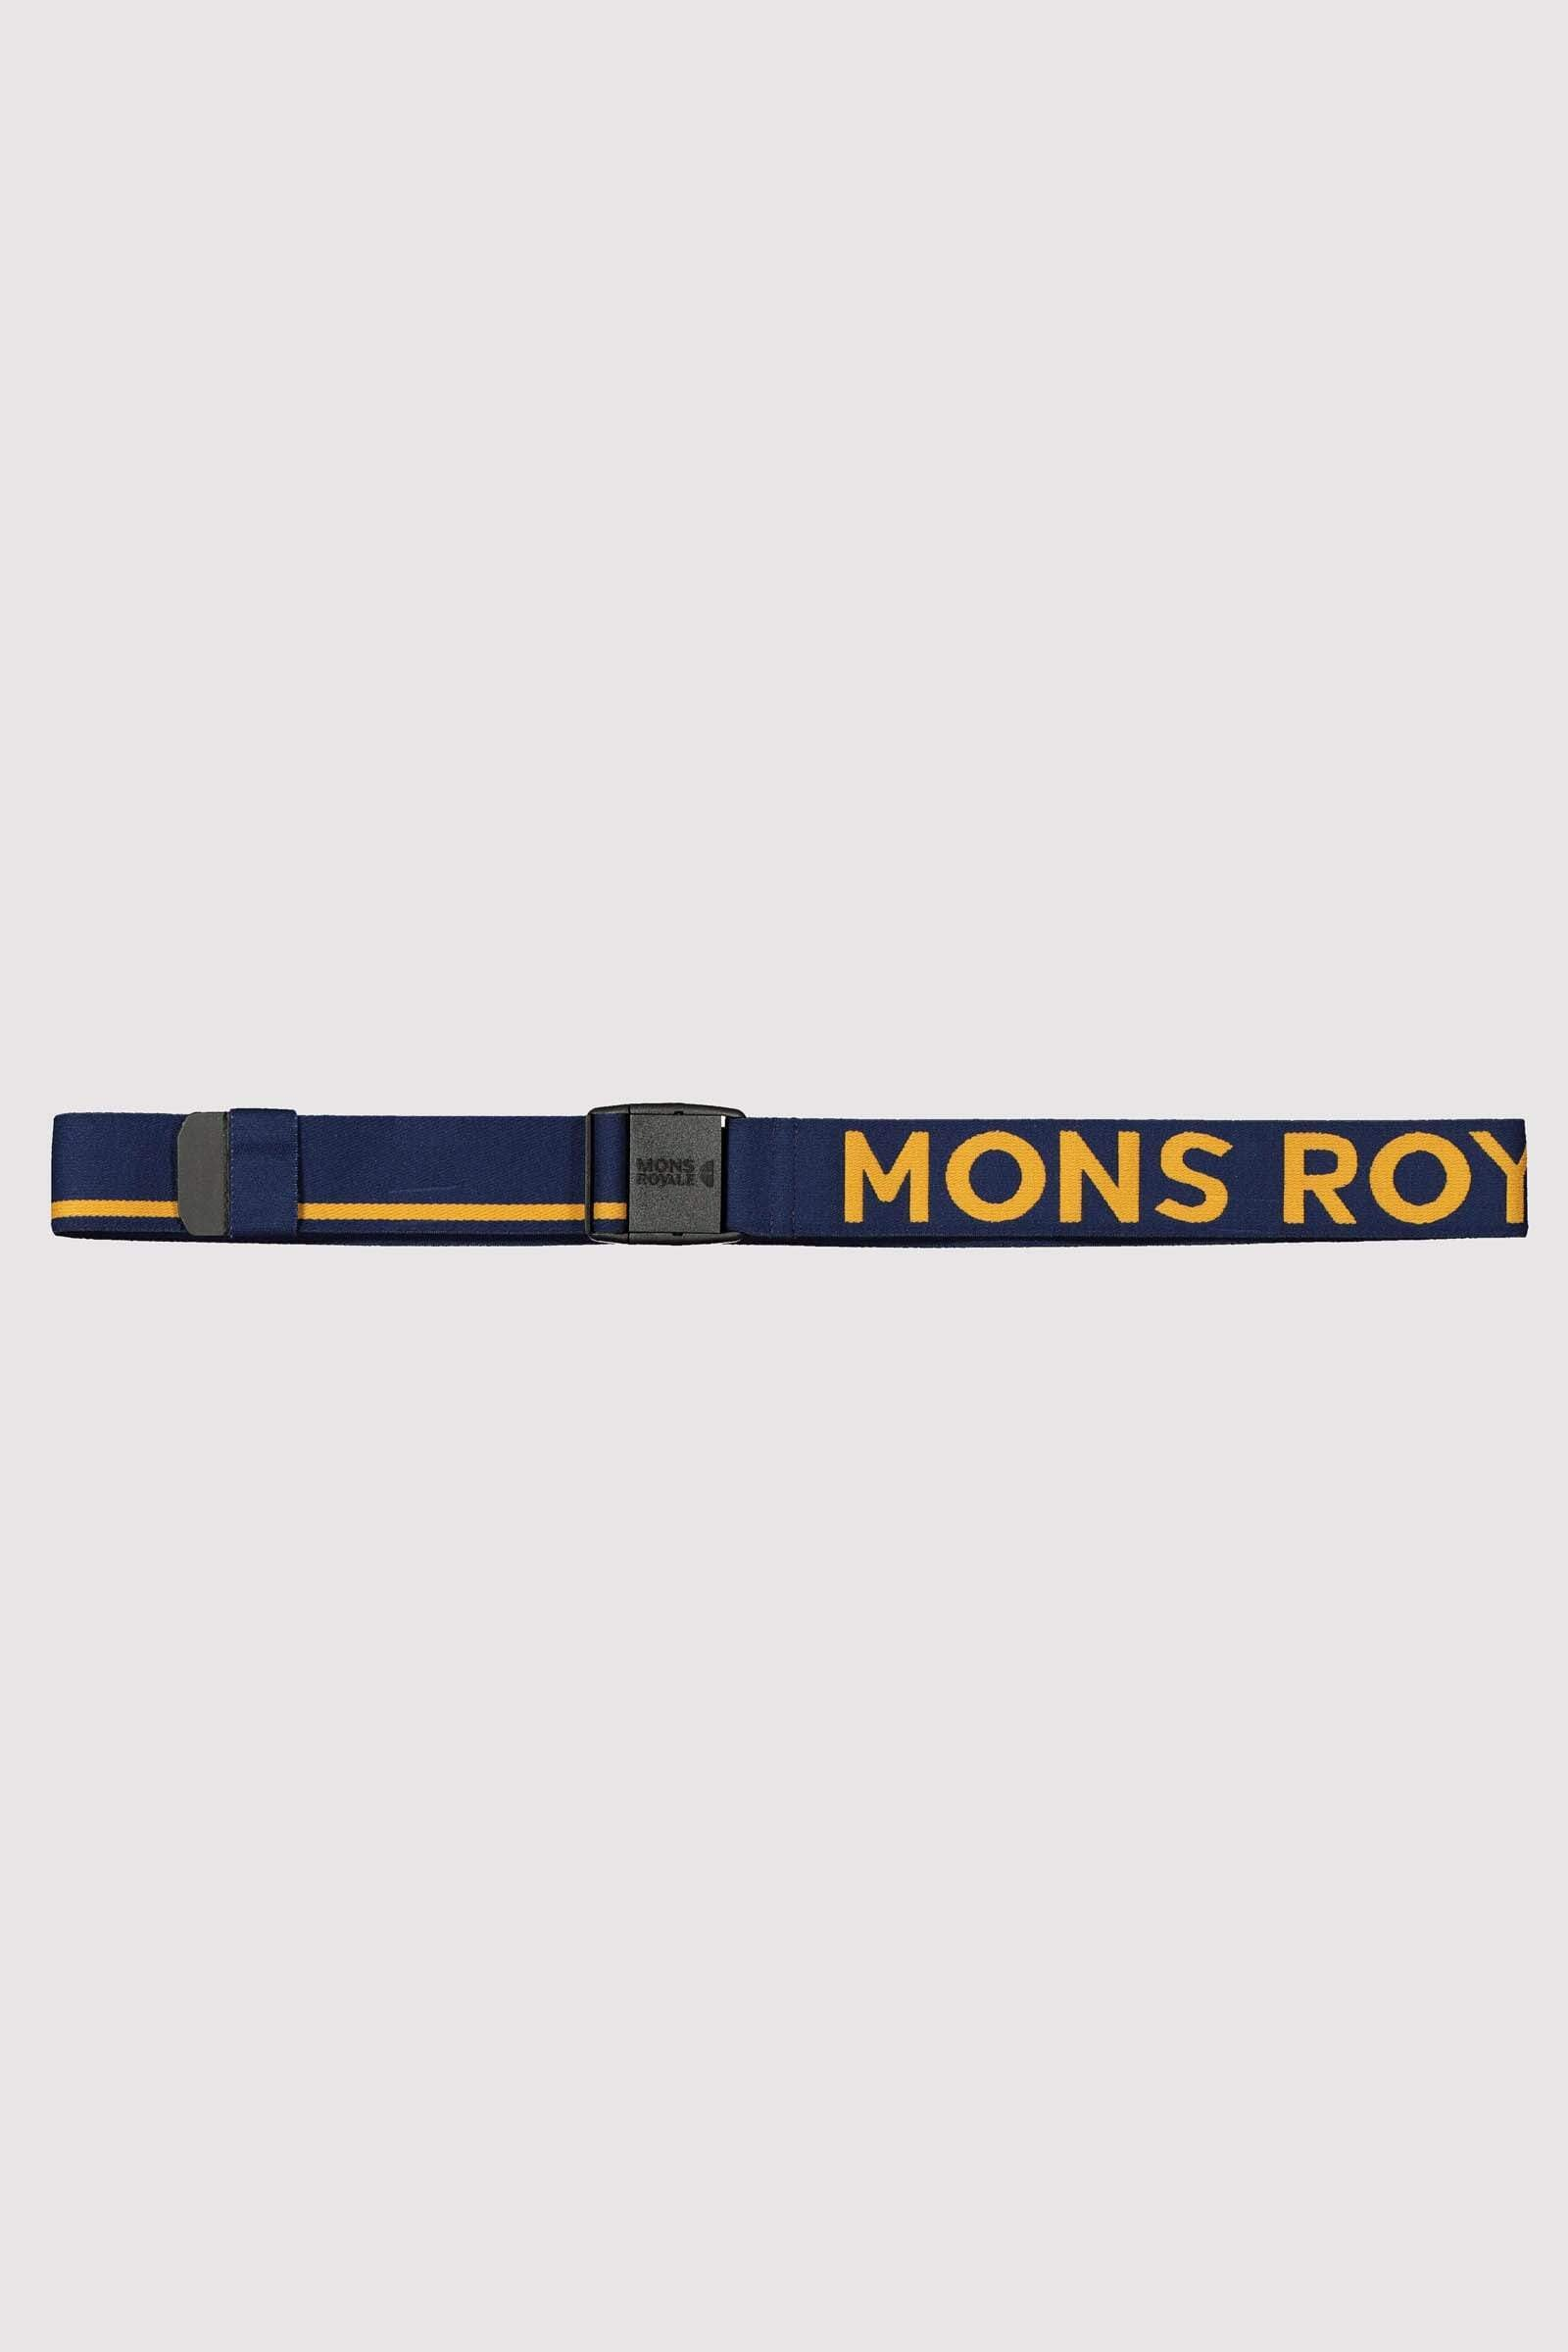 Mons Belt - Navy / Honey